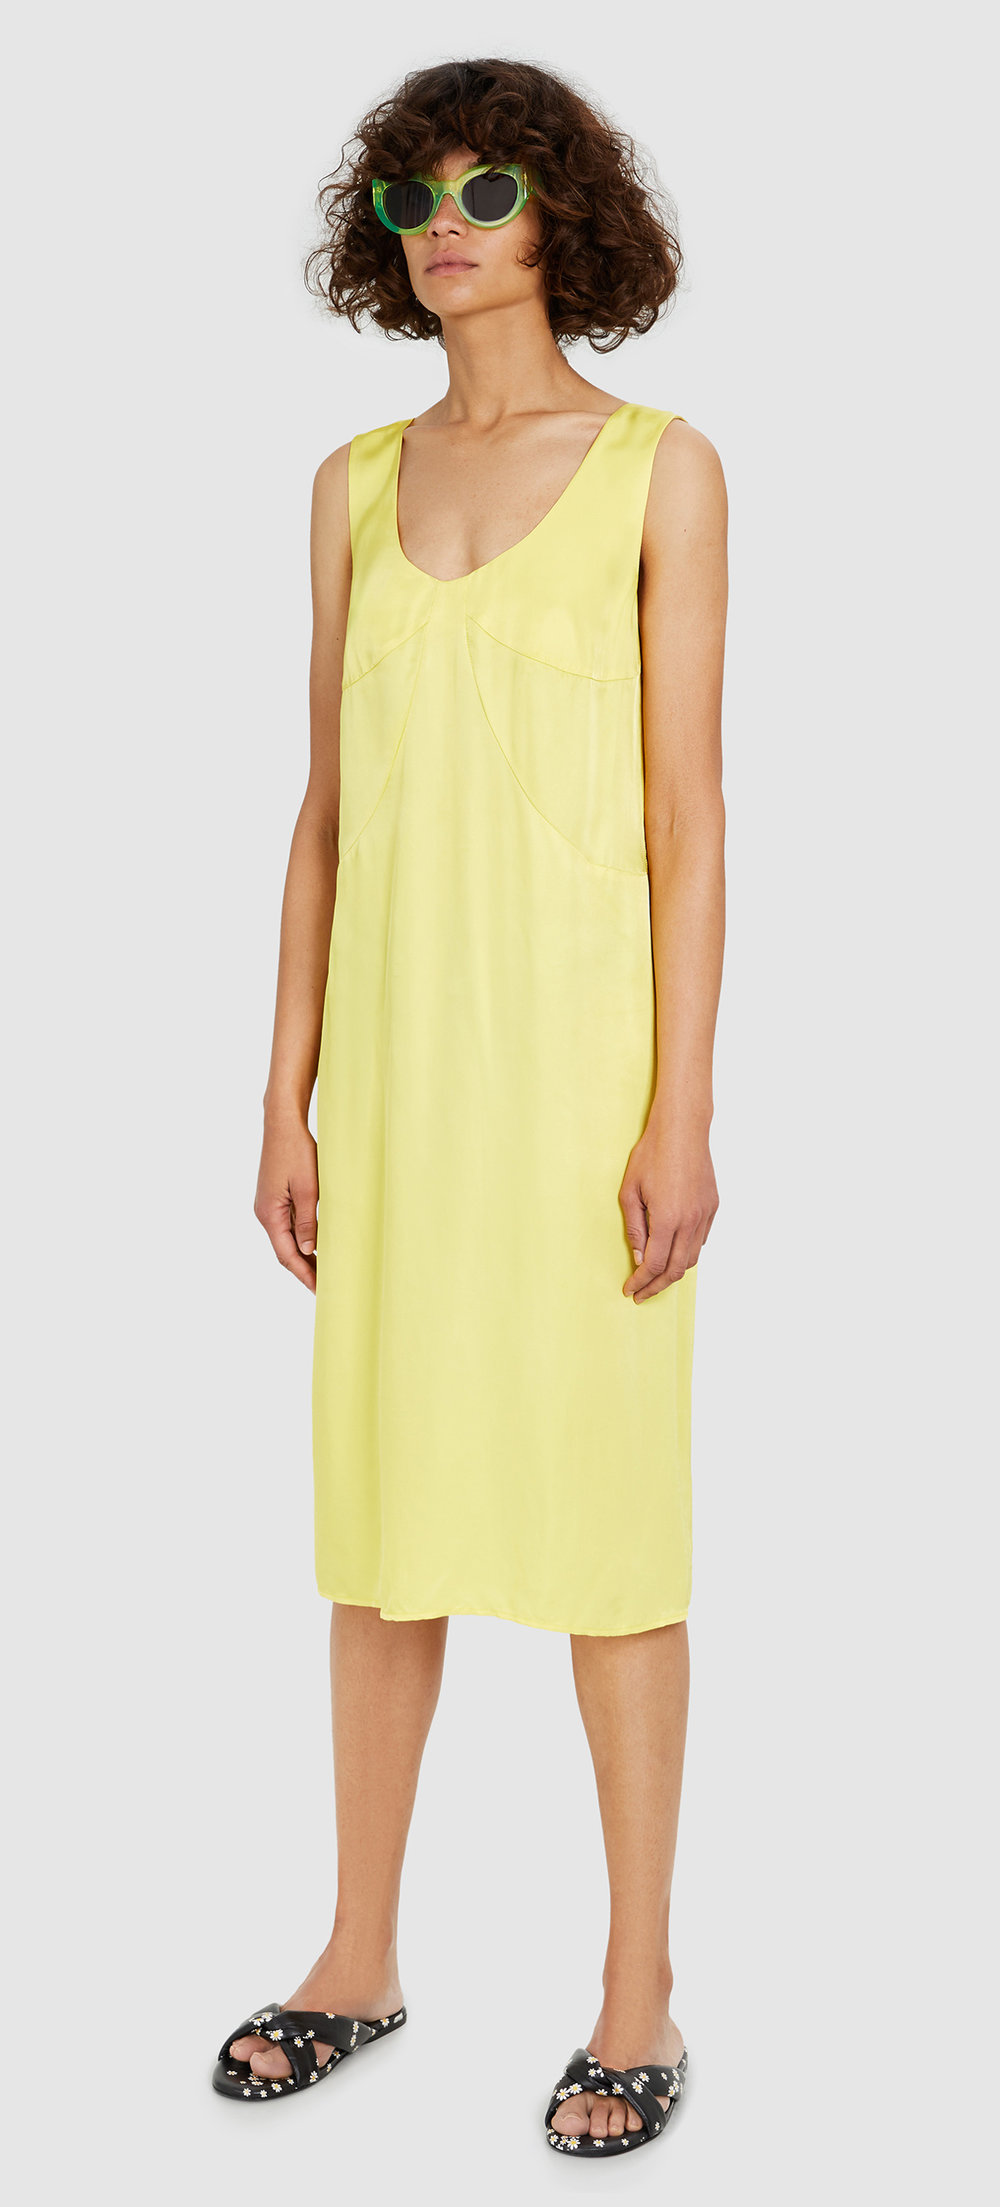 Bimba Y Lola - yellow low-cut dress - £175